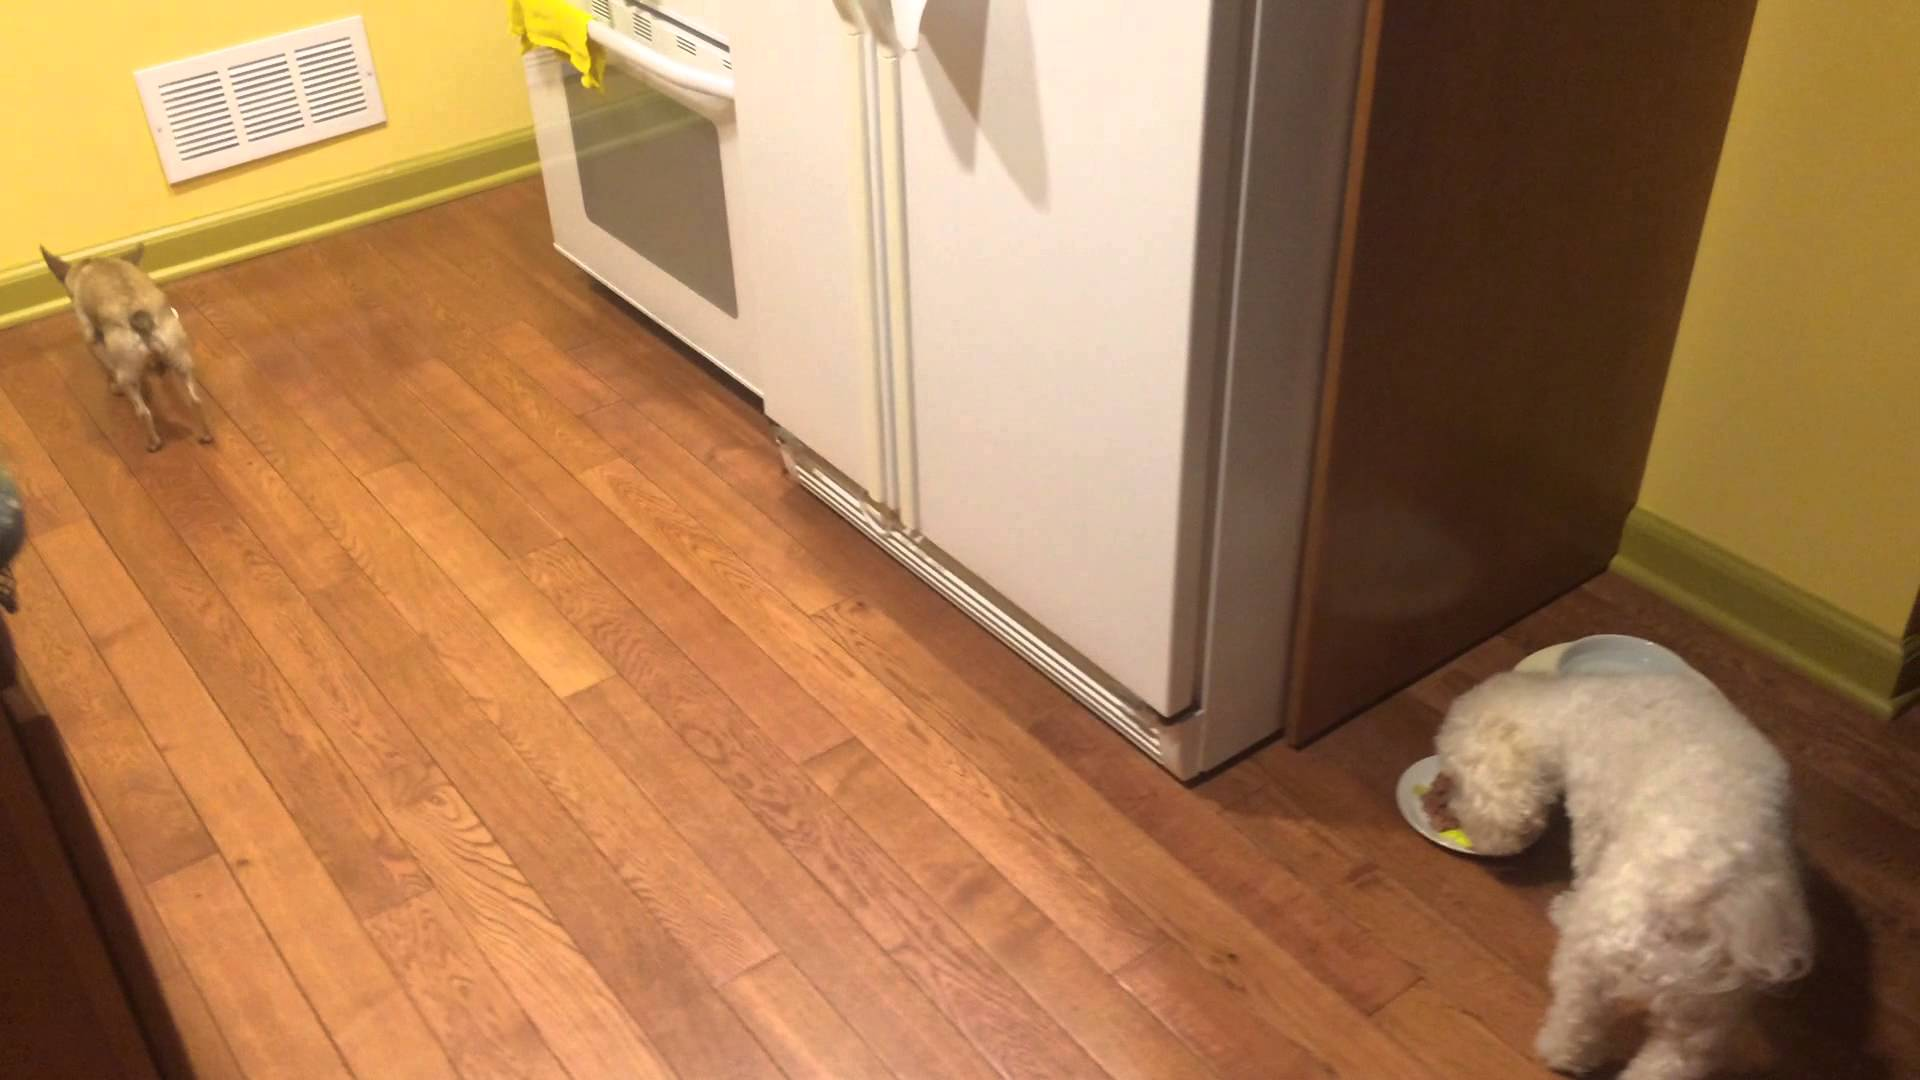 Tiny Rescued Dog Drags Her Plate Backwards Across the Kitchen So She Doesn't Have to Eat by Herself